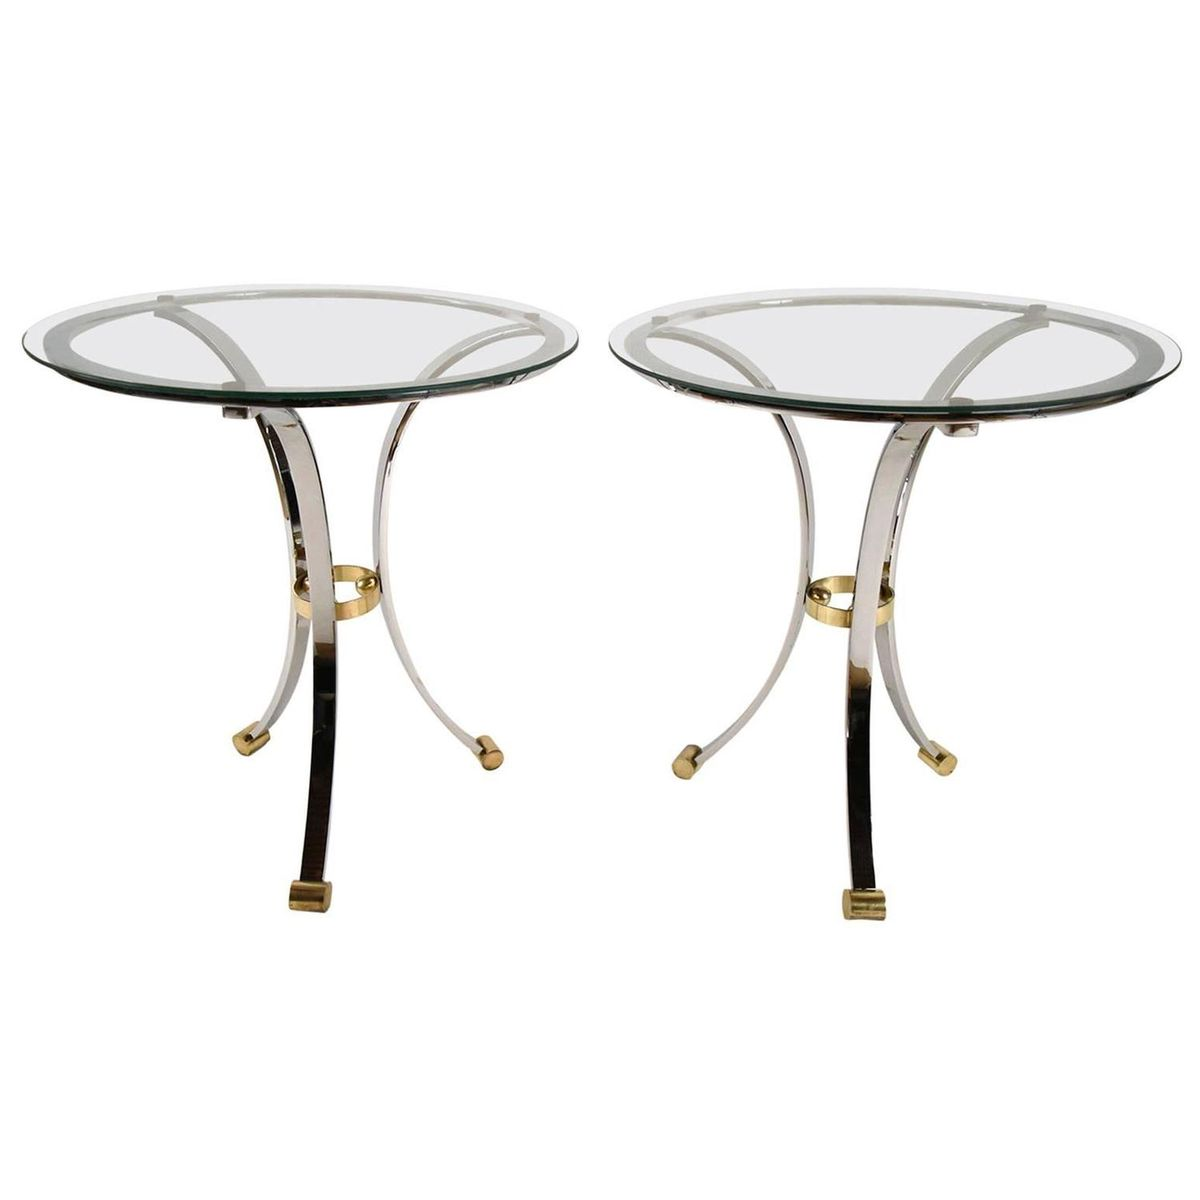 Round Chrome Amp Brass End Tables By Maison Jansen 1970s